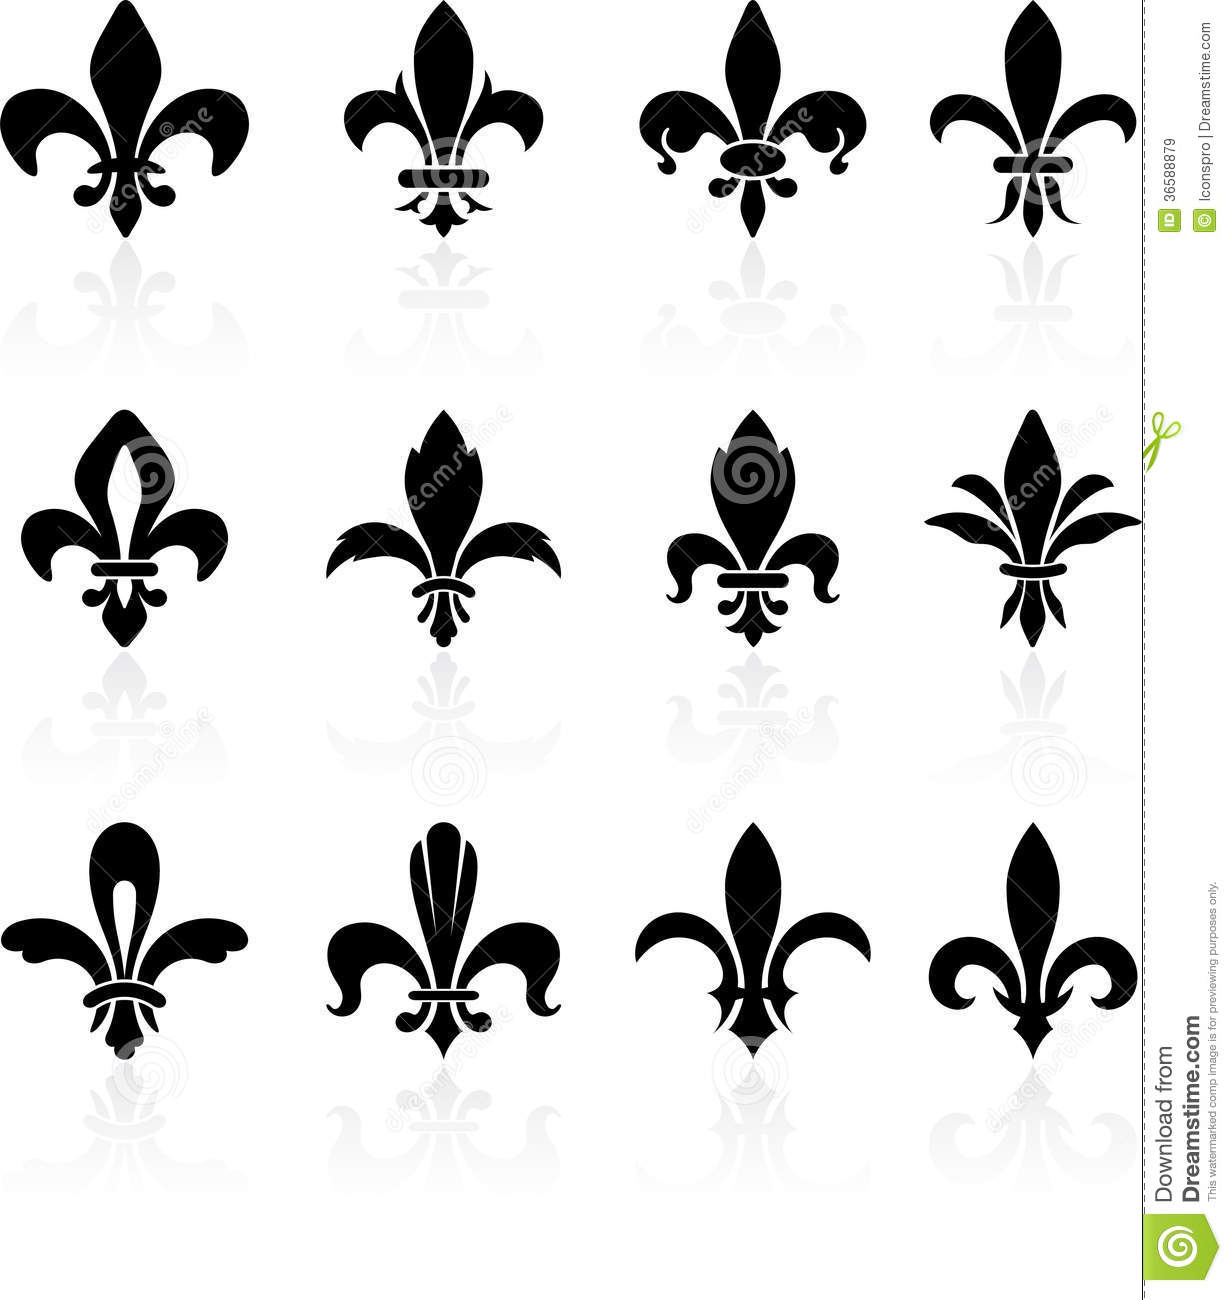 fleur de lis design collection royalty free stock images. Black Bedroom Furniture Sets. Home Design Ideas